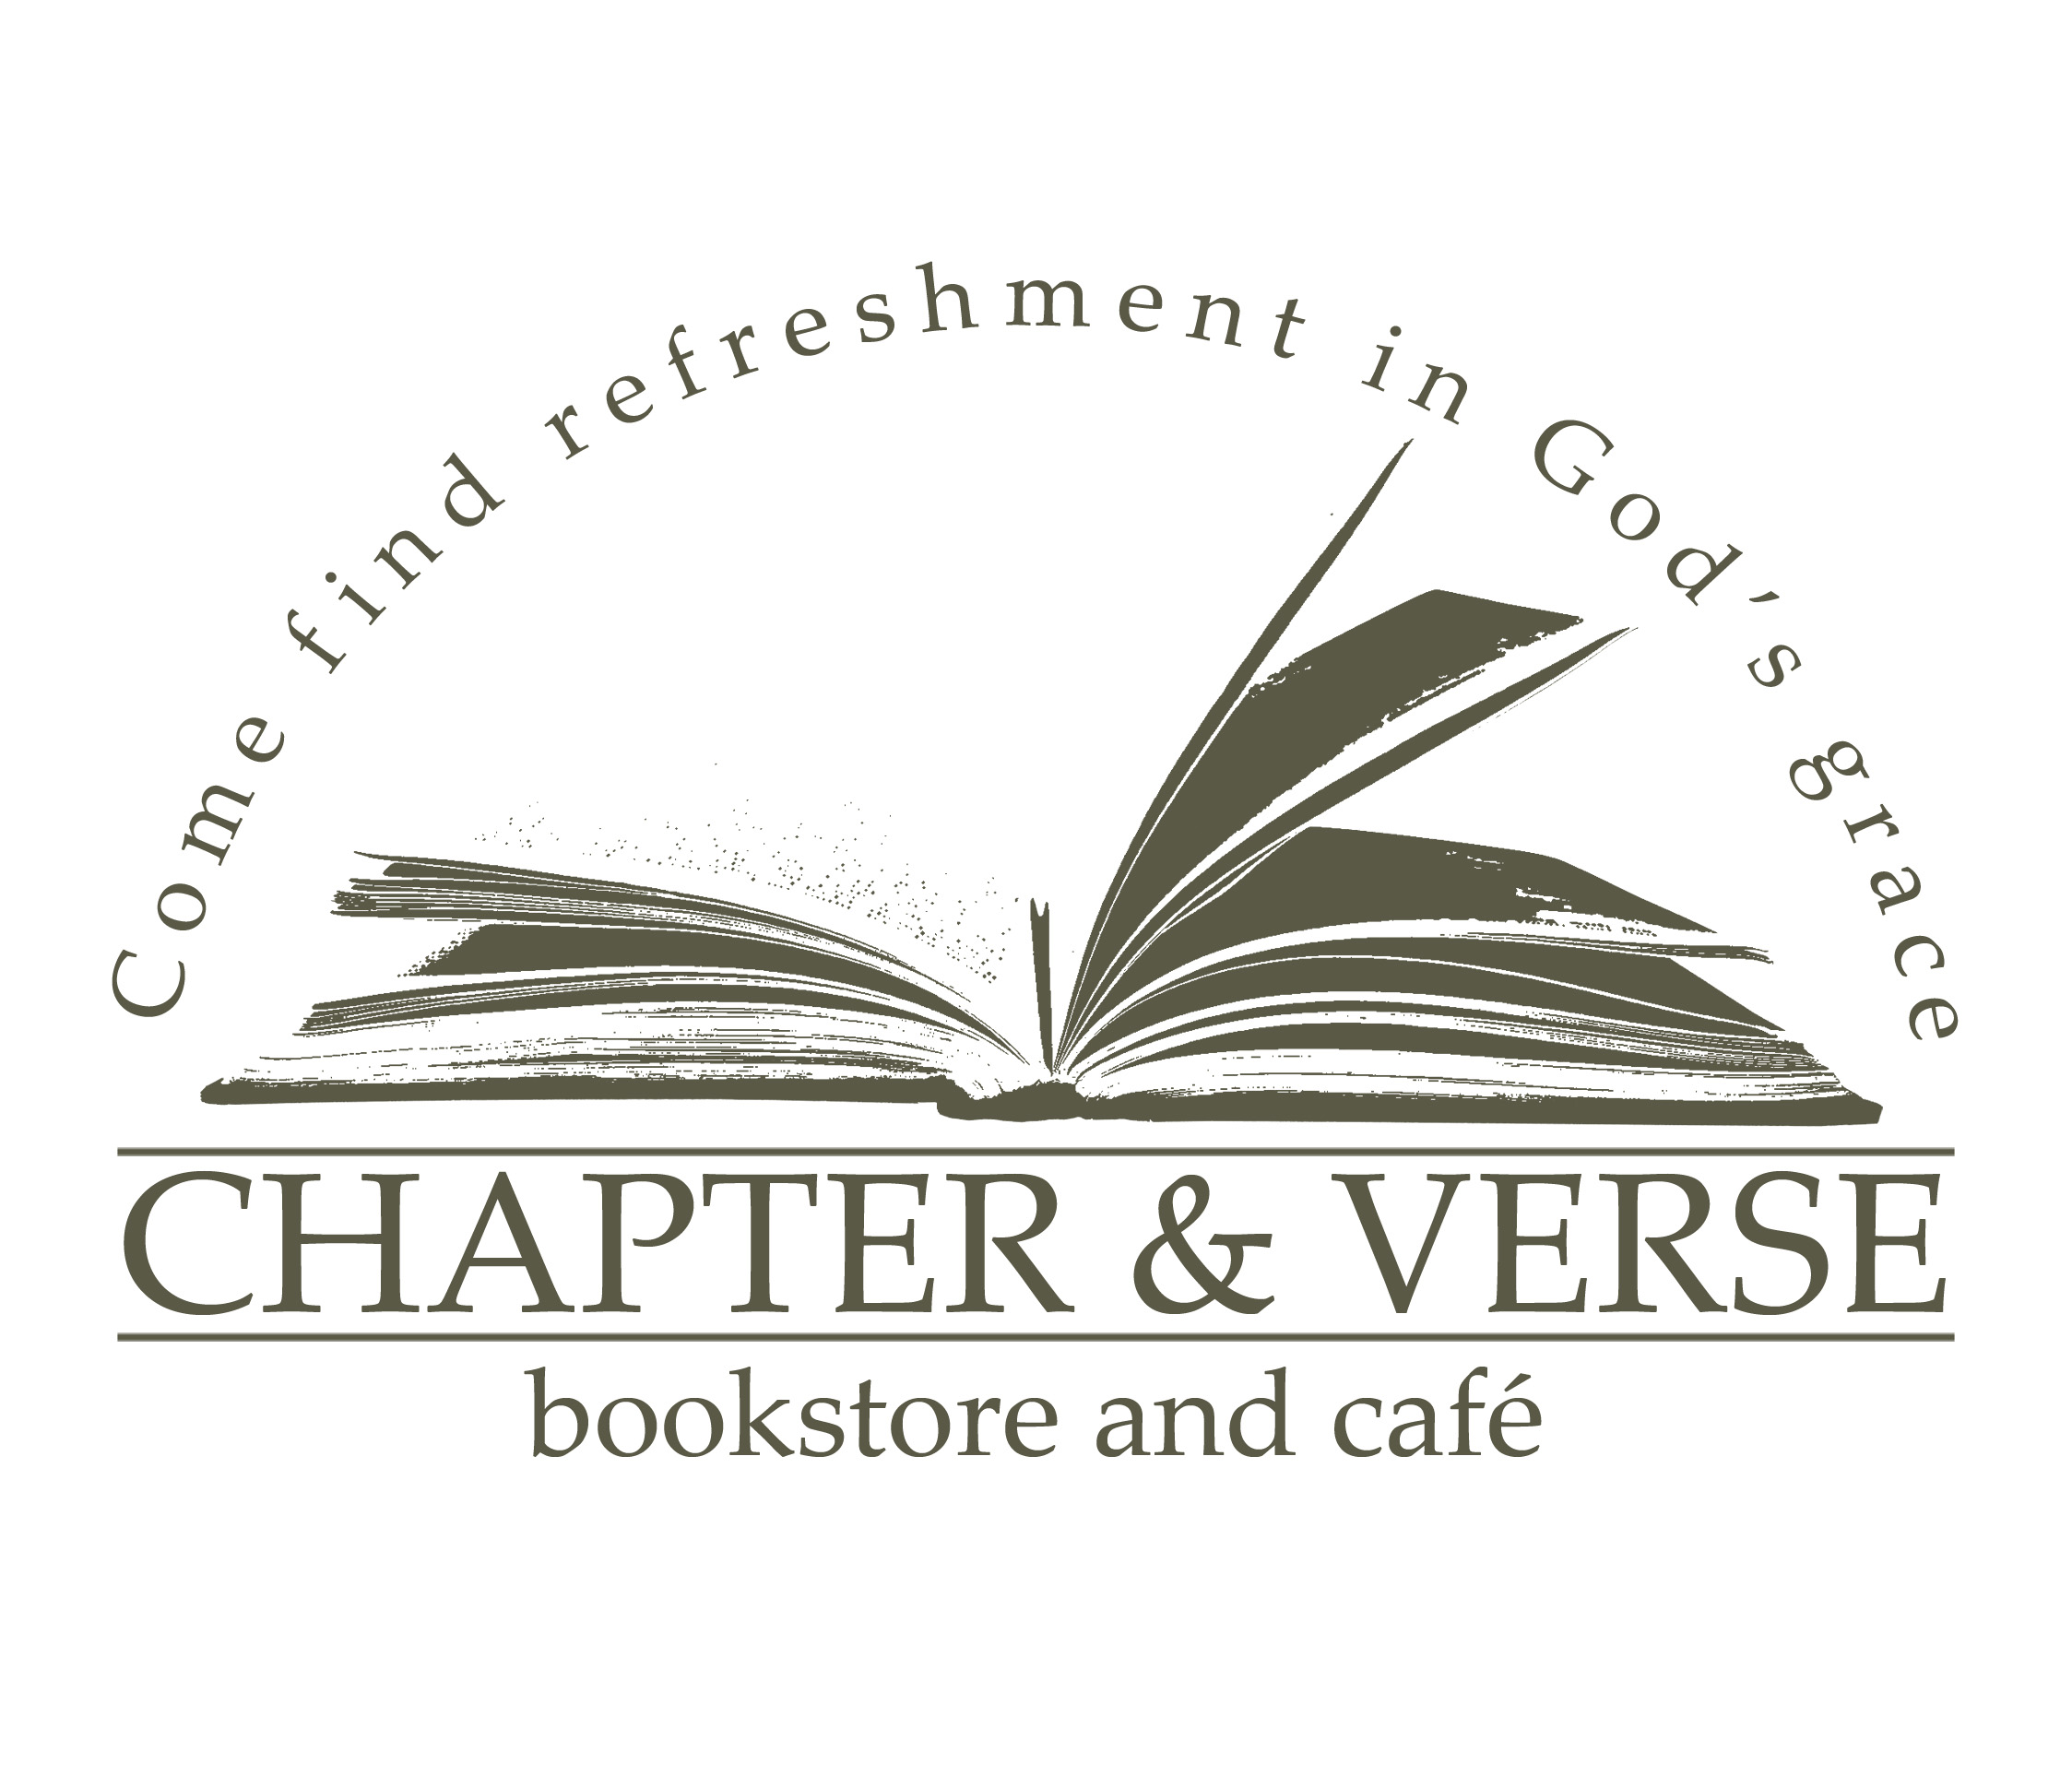 Chapter & Verse Bookstore and Cafe